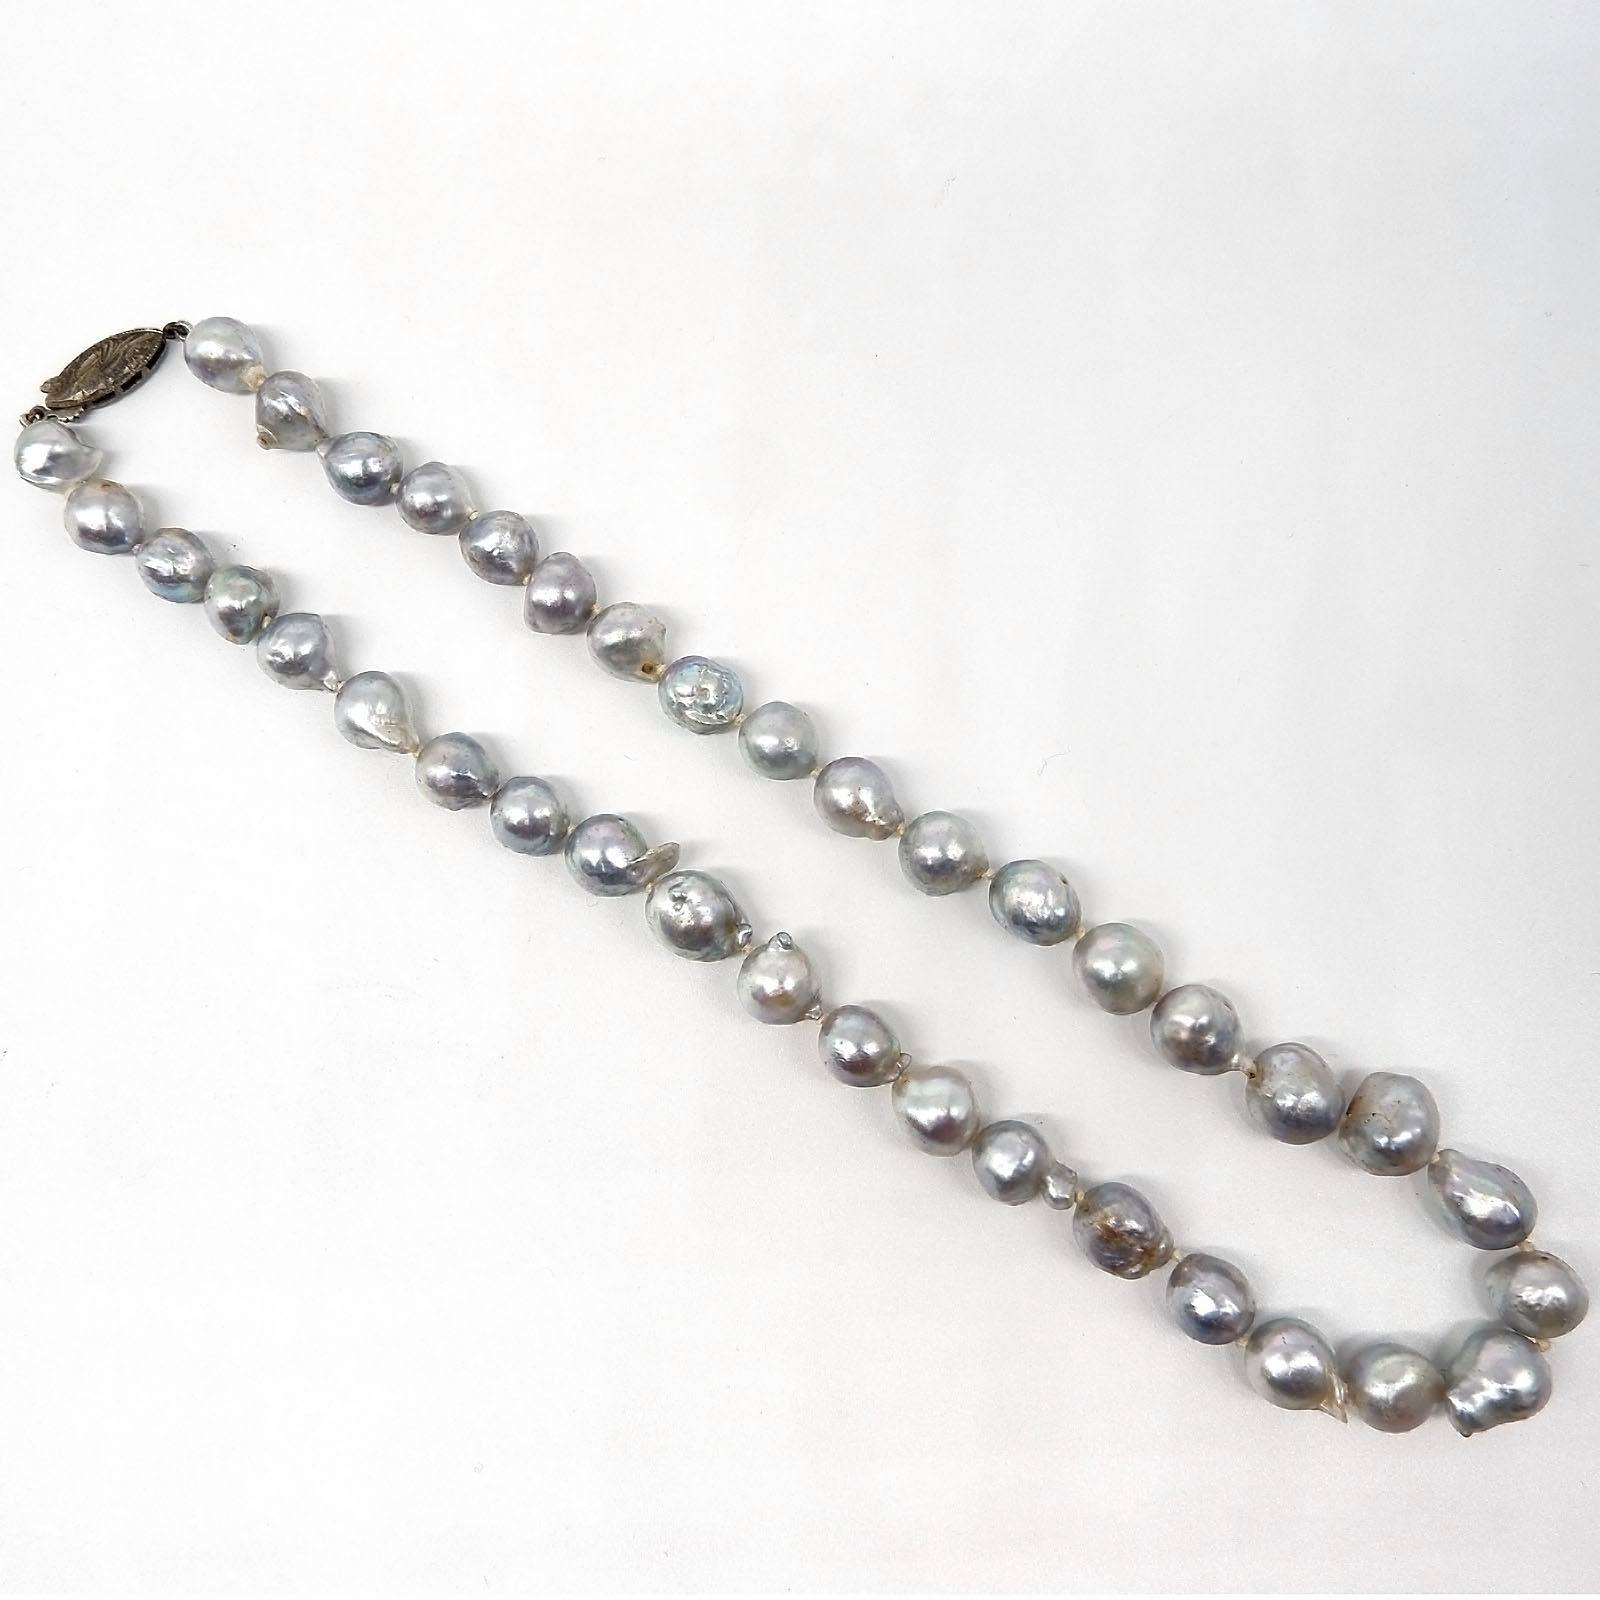 'Strand of Baroque Cultured Pearls, Silver with High Lustre, Akoya Type '